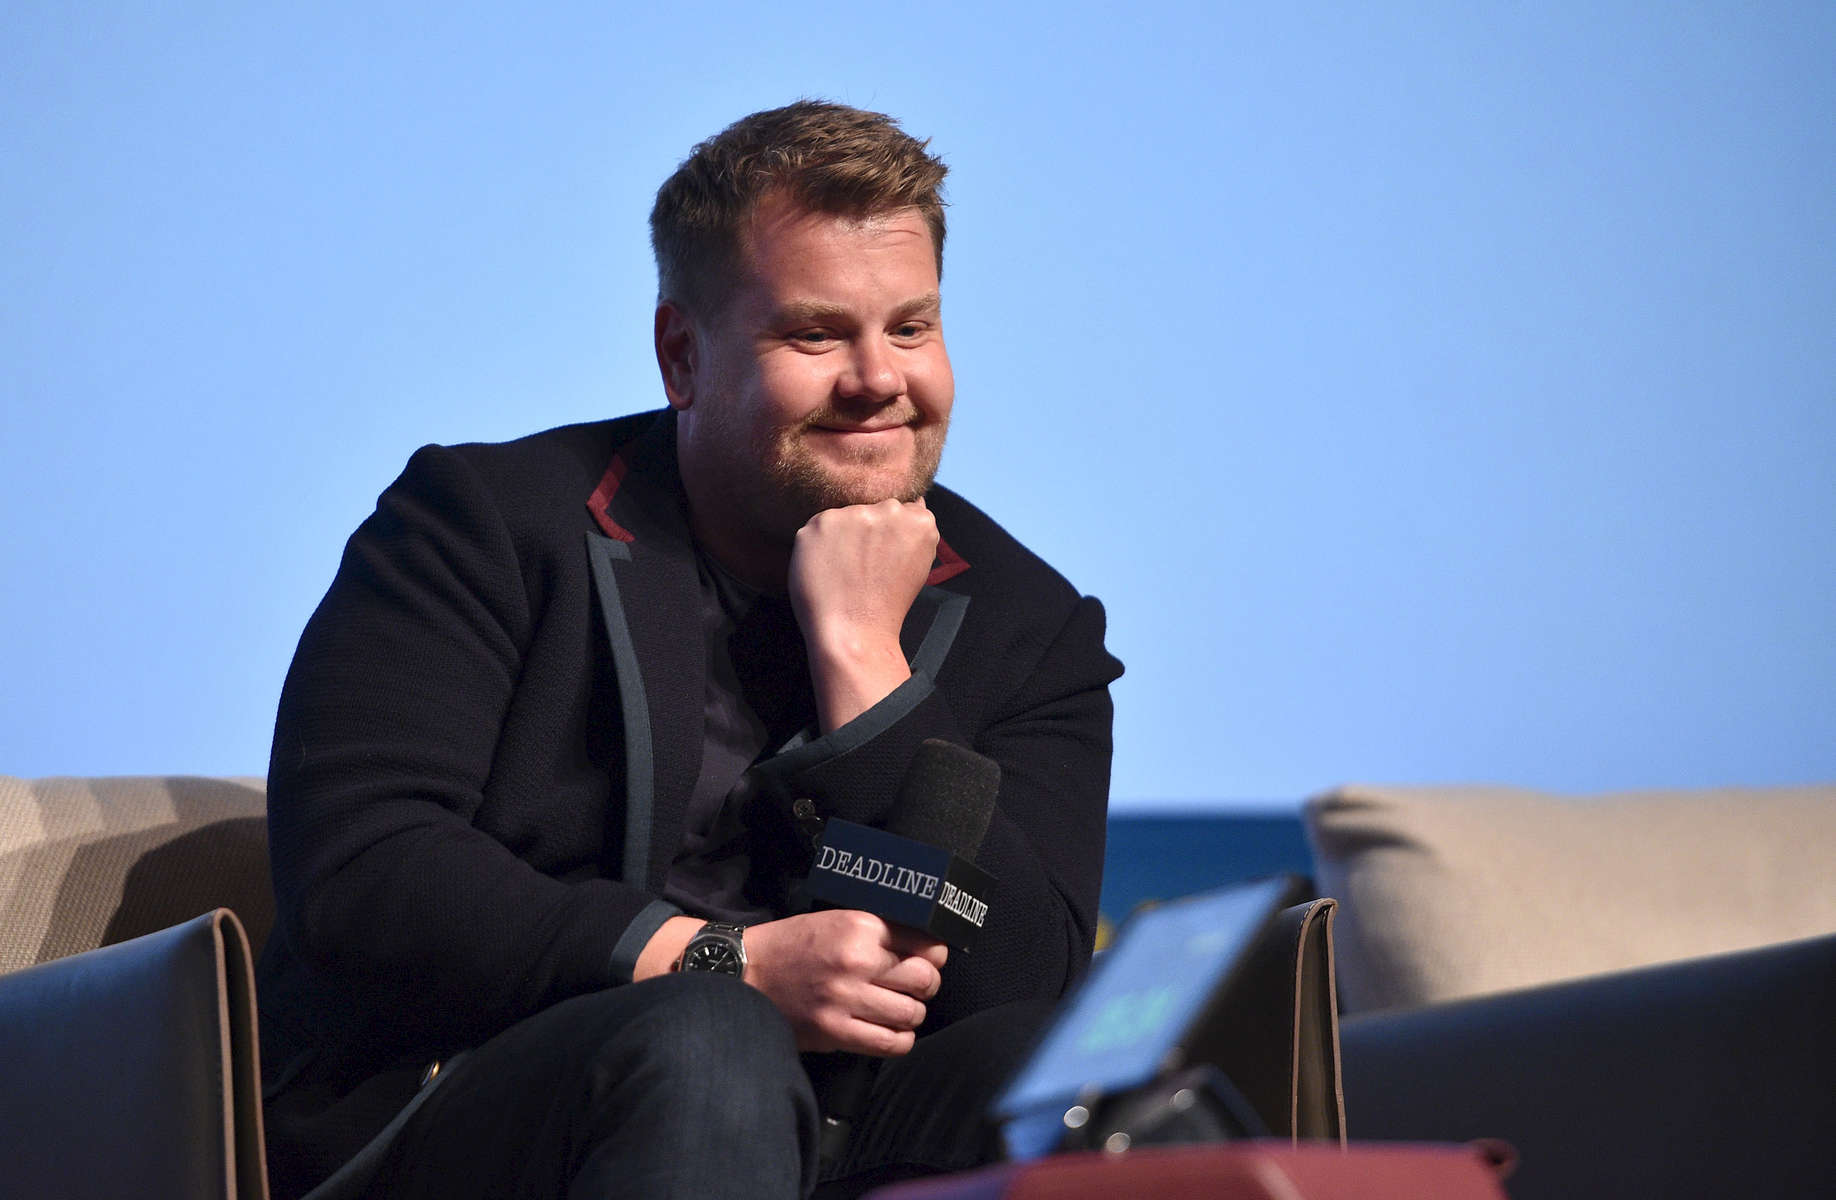 Mandatory Credit: Photo by Stewart Cook/Deadline/REX/Shutterstock (9629821b)James CordenCBS 'The Late Late Show with James Corden' presentation, The Contenders Emmys presented by Deadline Hollywood, Los Angeles, USA - 15 Apr 2018